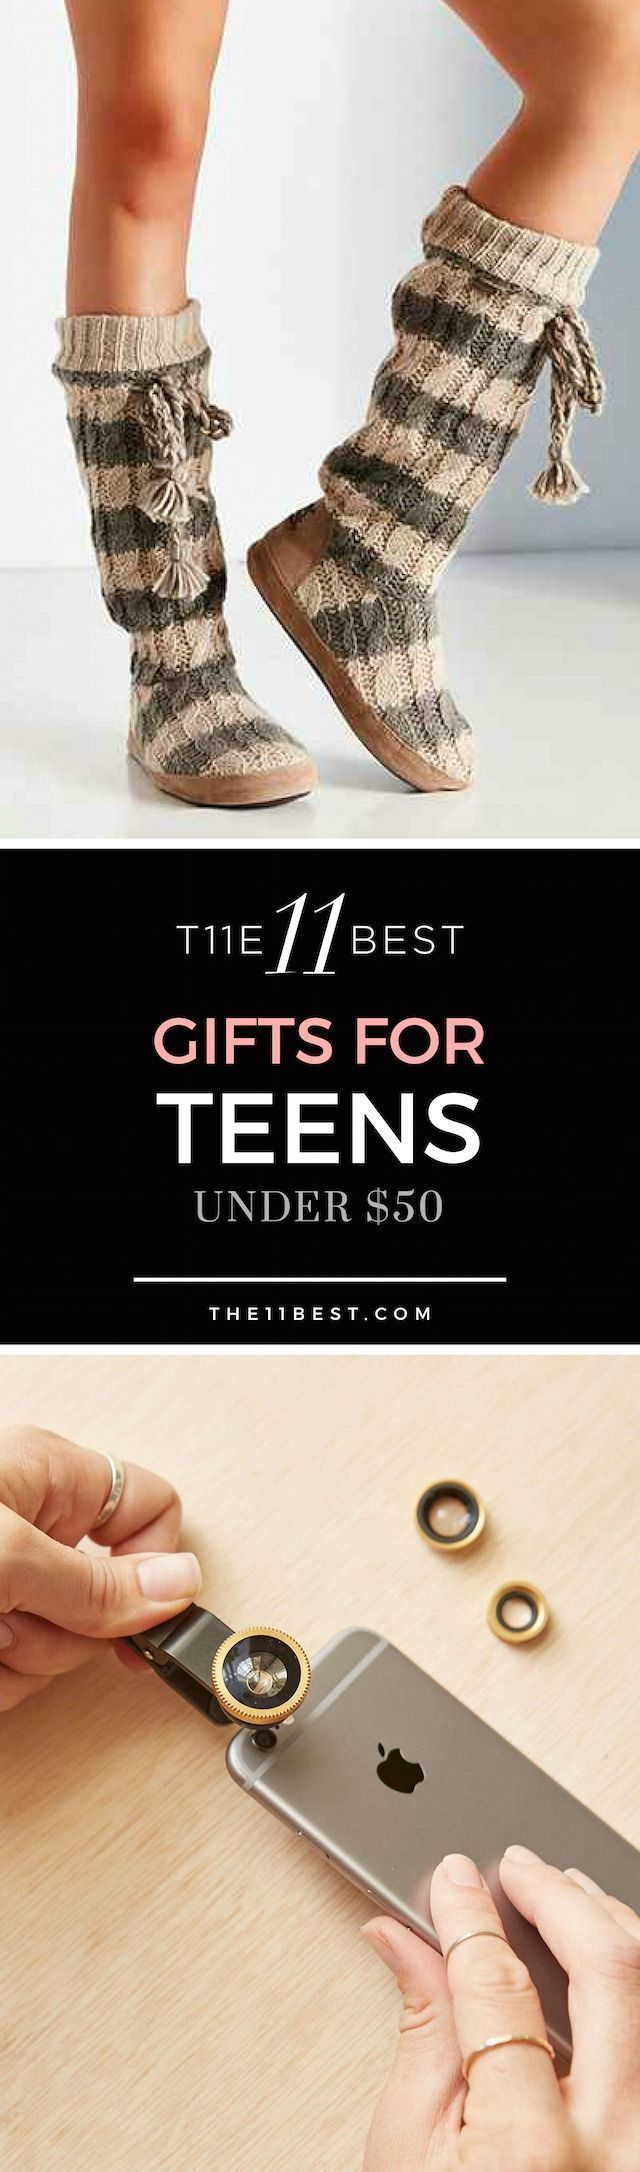 The 11 Best Gifts for Teens under $50